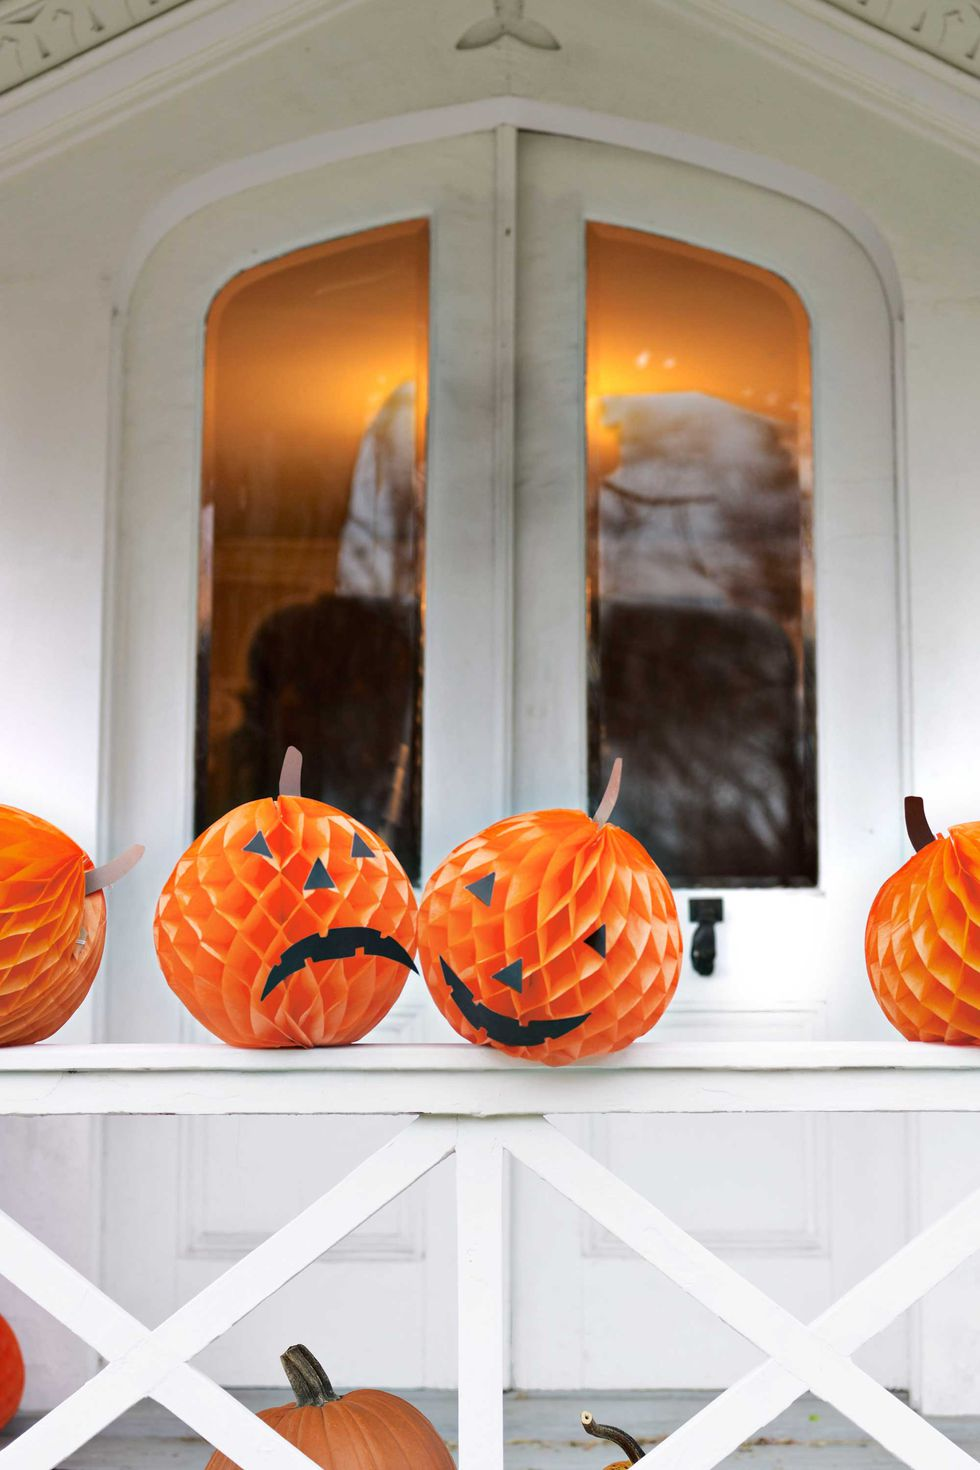 Orange tissue paper replaces pumpkins in this cool Halloween decorating idea